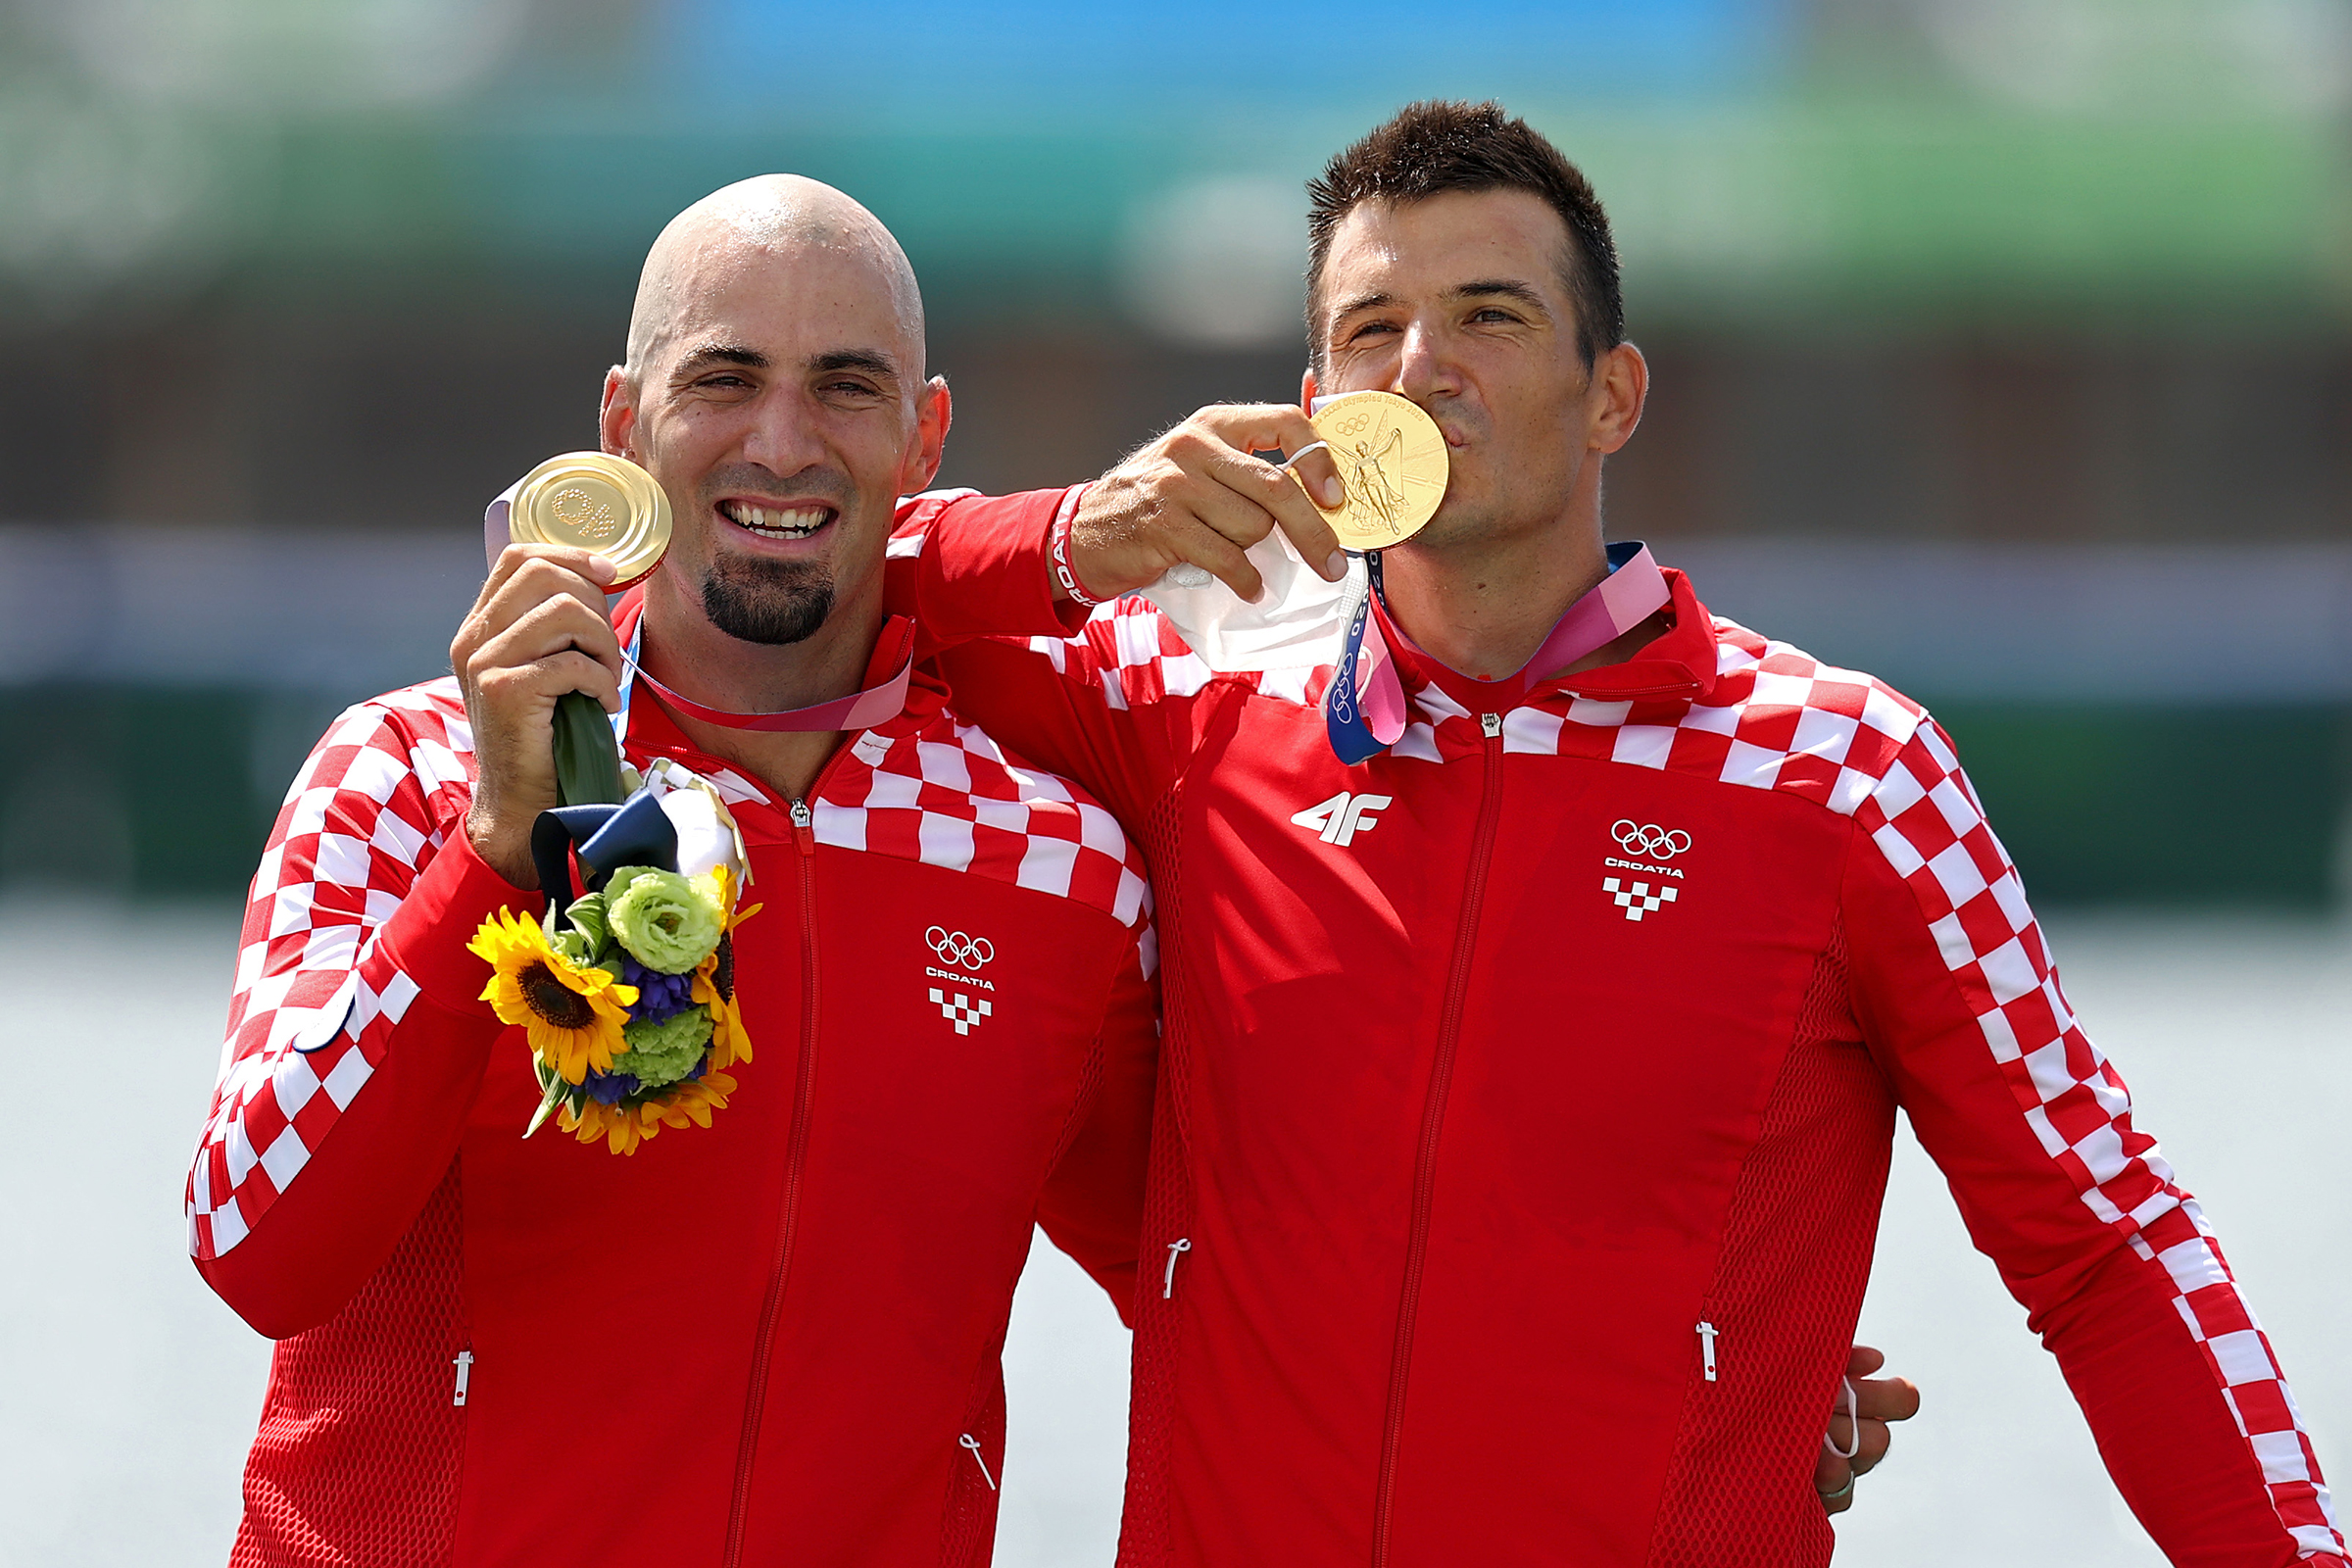 Brothers Martin Sinkovic and Valent Sinkovic of Team Croatia pose with their gold medals after the rowing men's pair final on July 29.